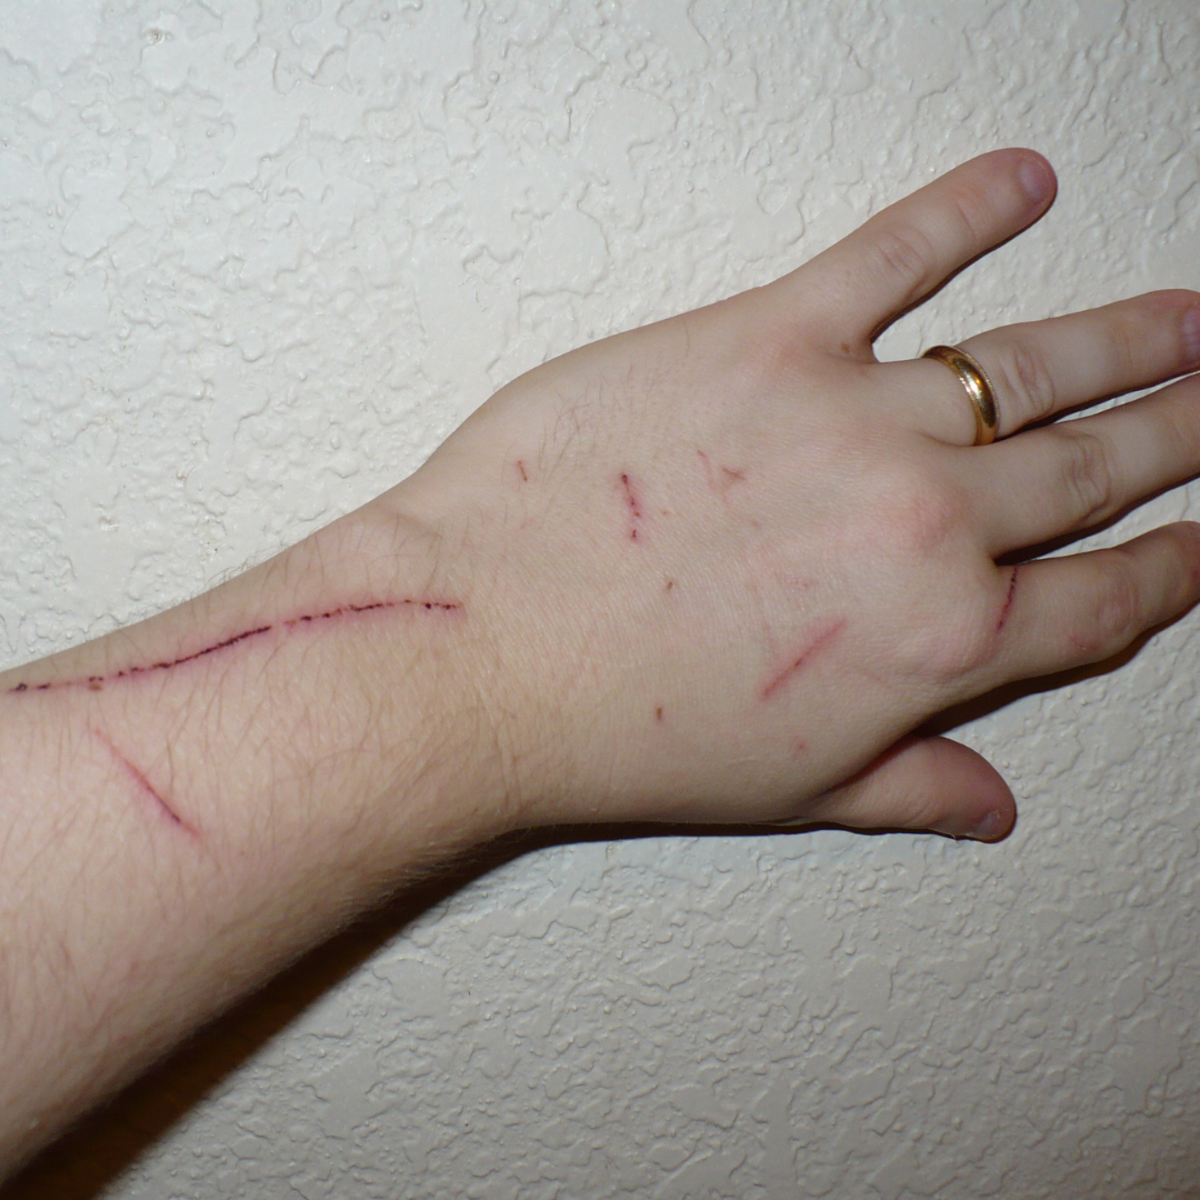 Scratches on the hand.